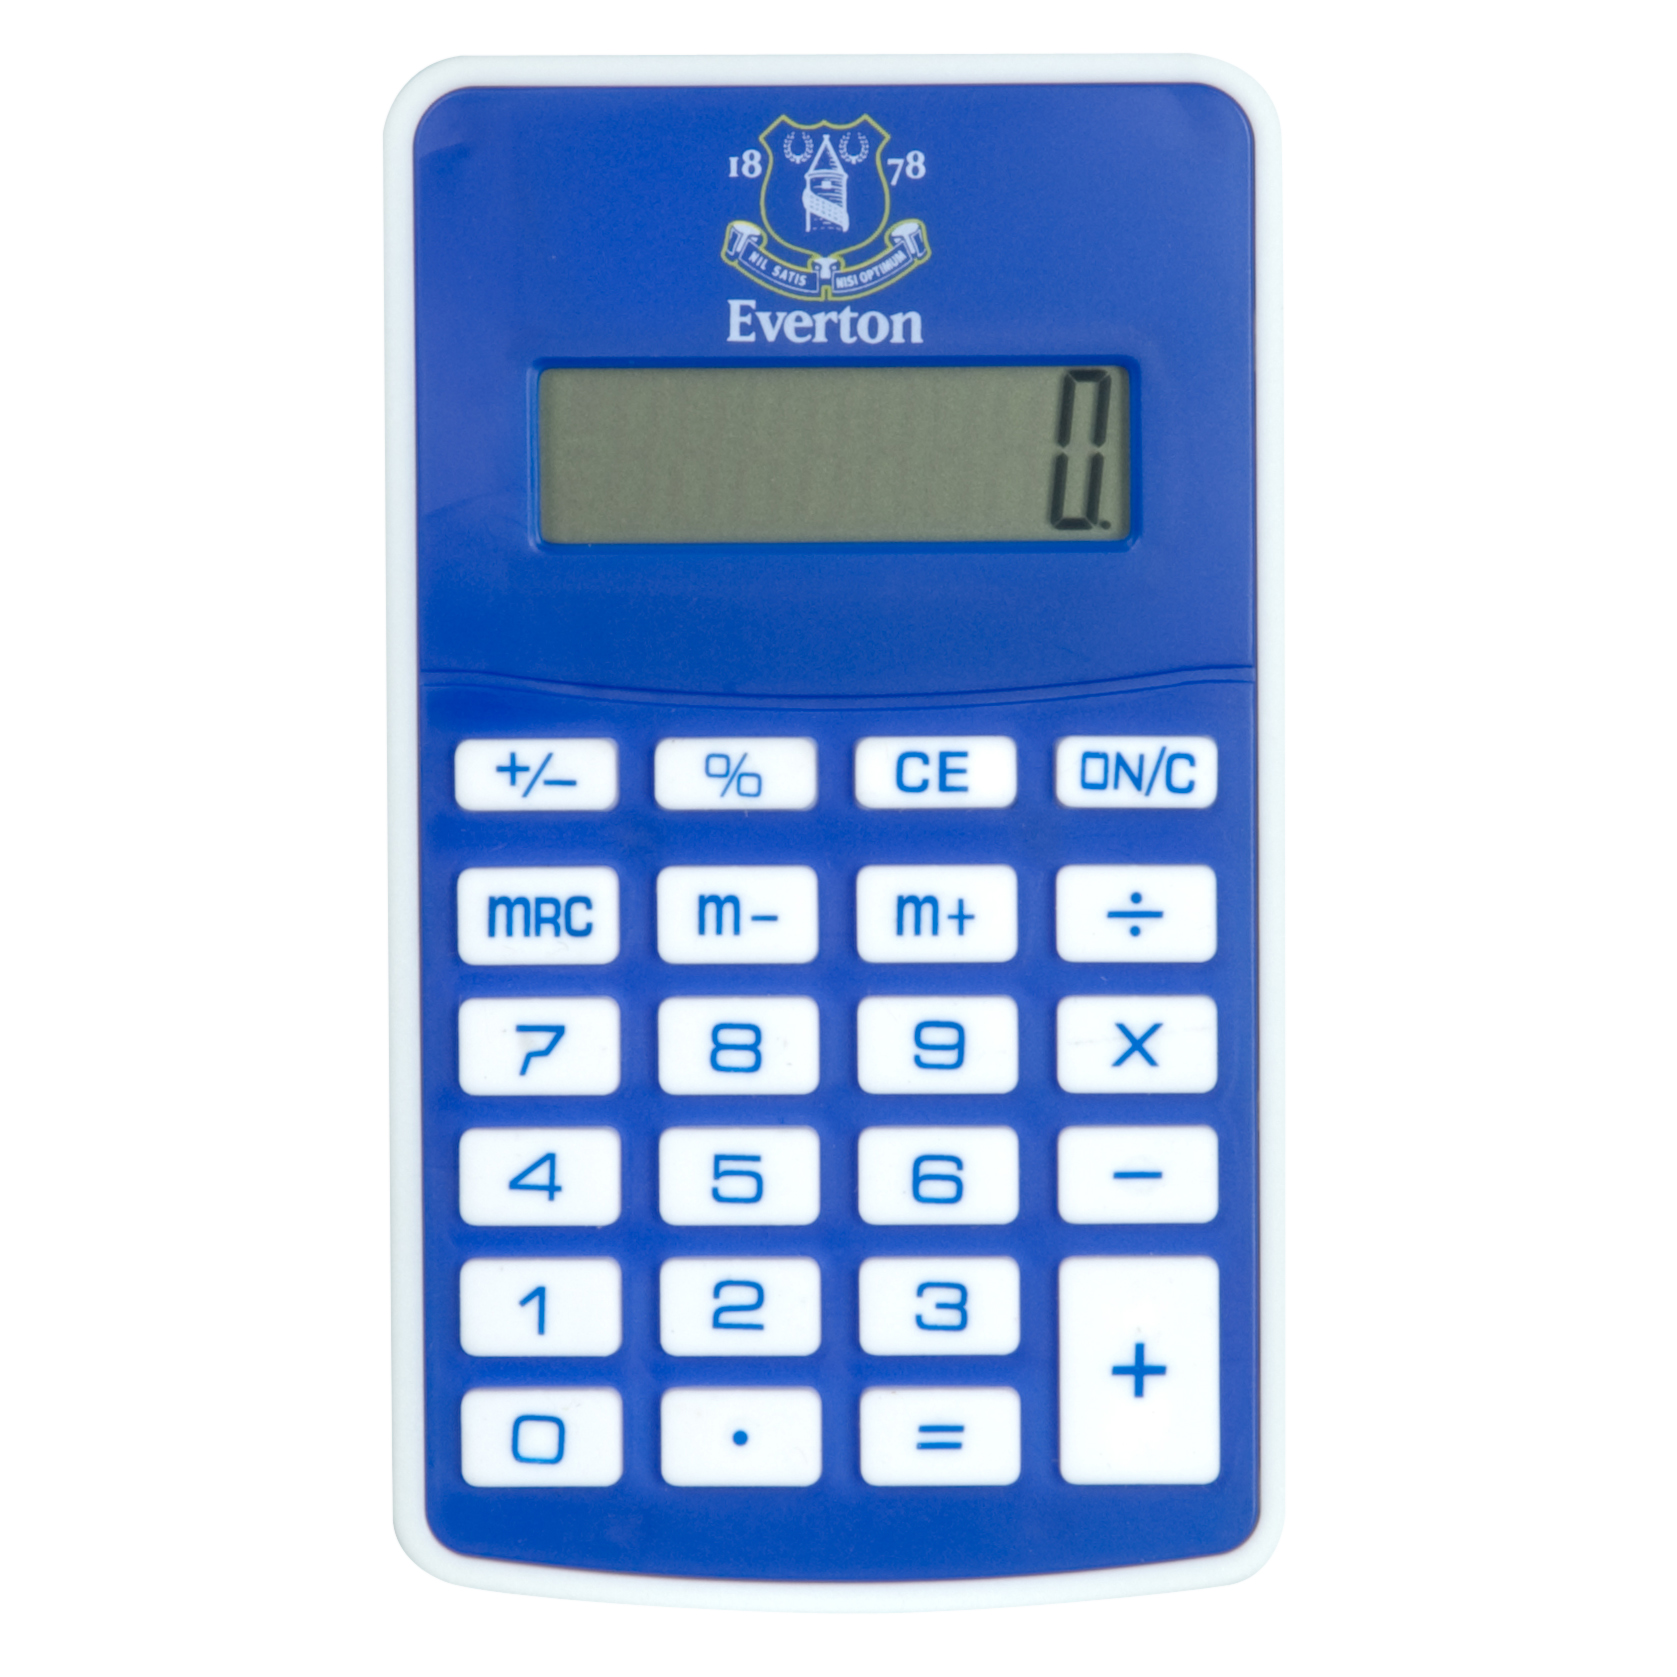 Everton Pocket Calculator